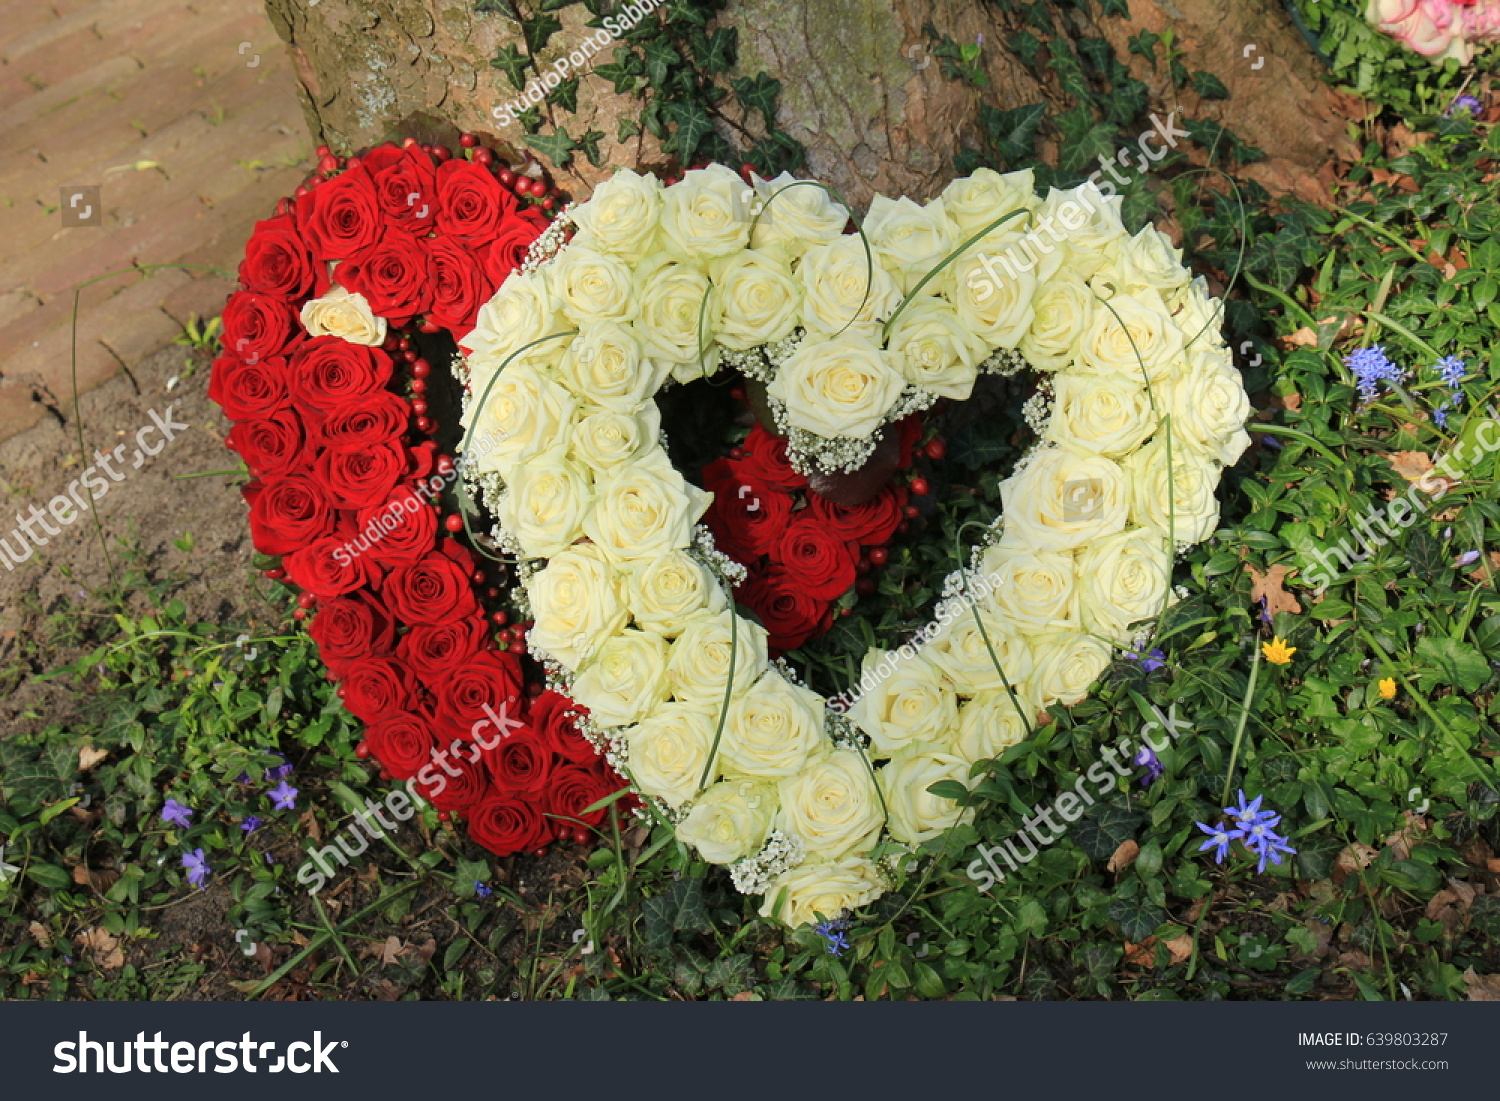 Heart shaped sympathy flowers funeral flowers stock photo royalty heart shaped sympathy flowers or funeral flowers near a tree izmirmasajfo